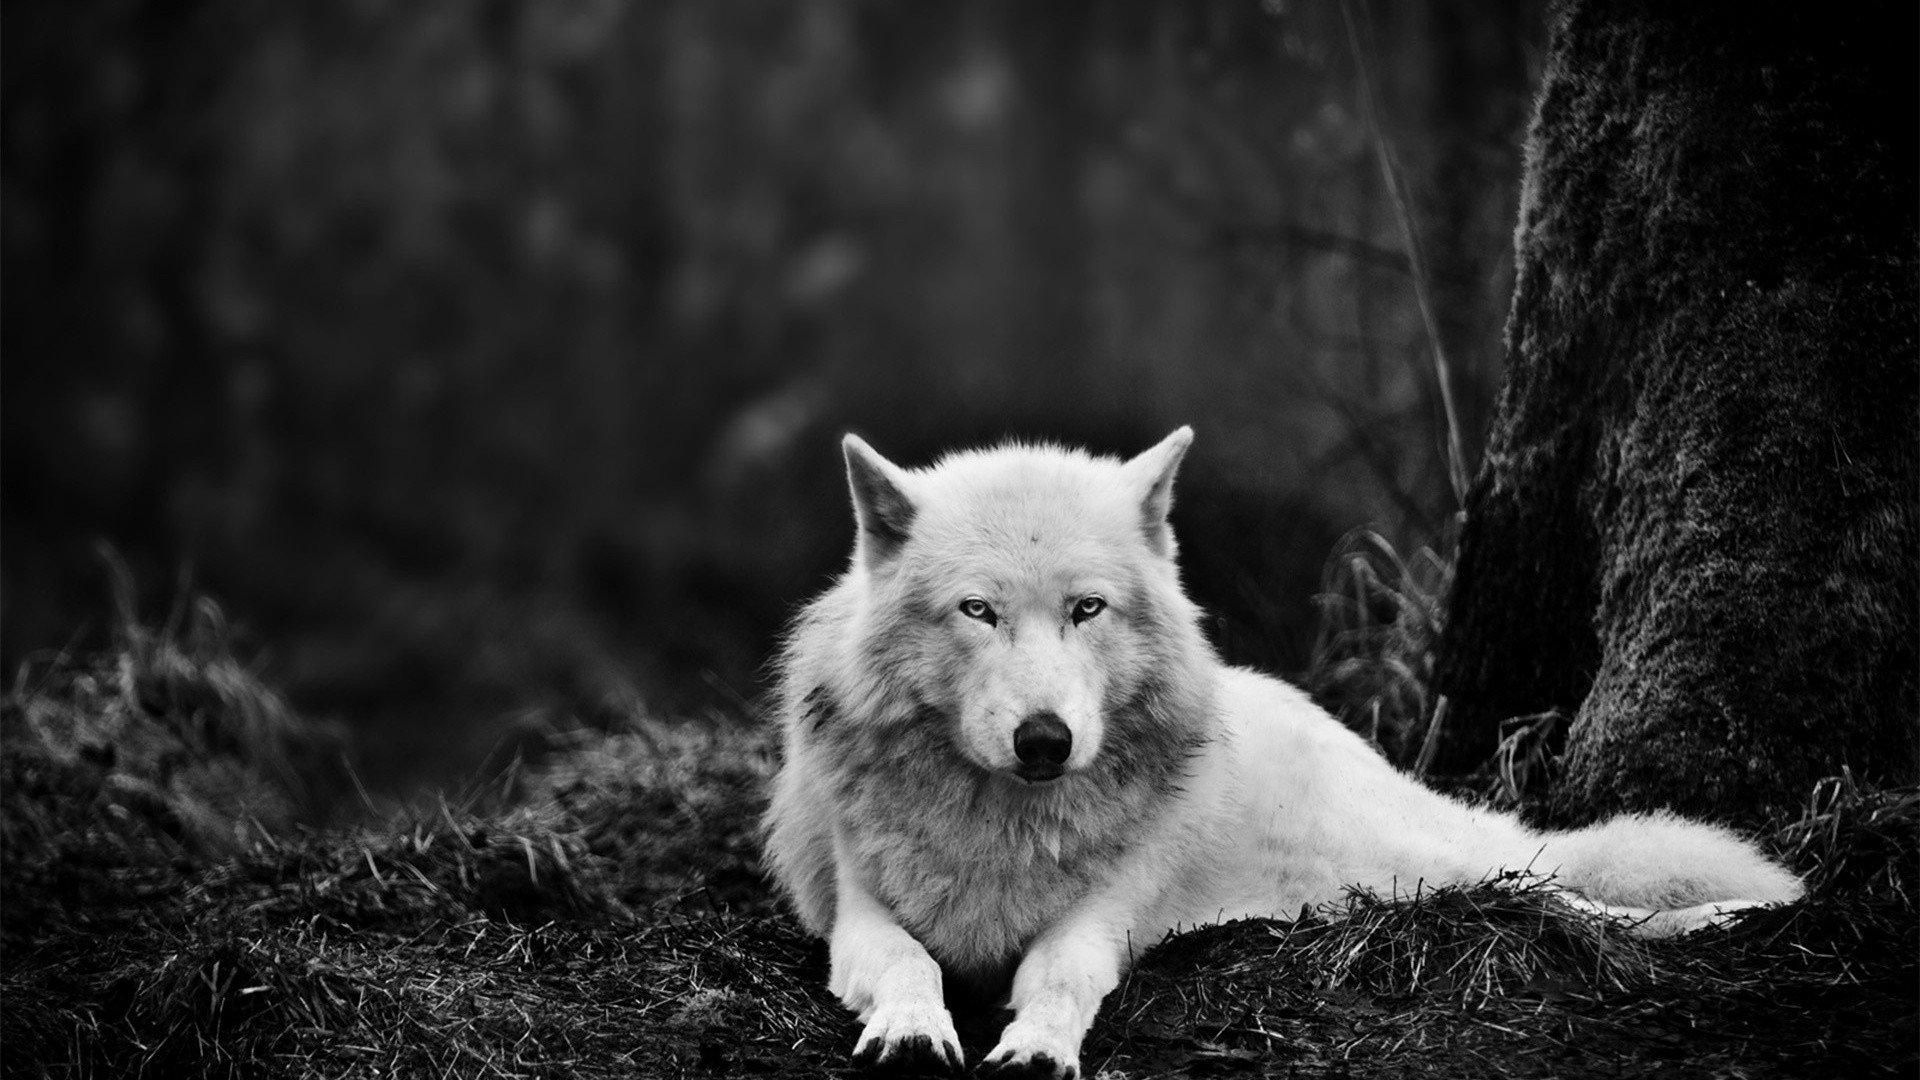 Download free lone wolf wallpapers for your mobile phone